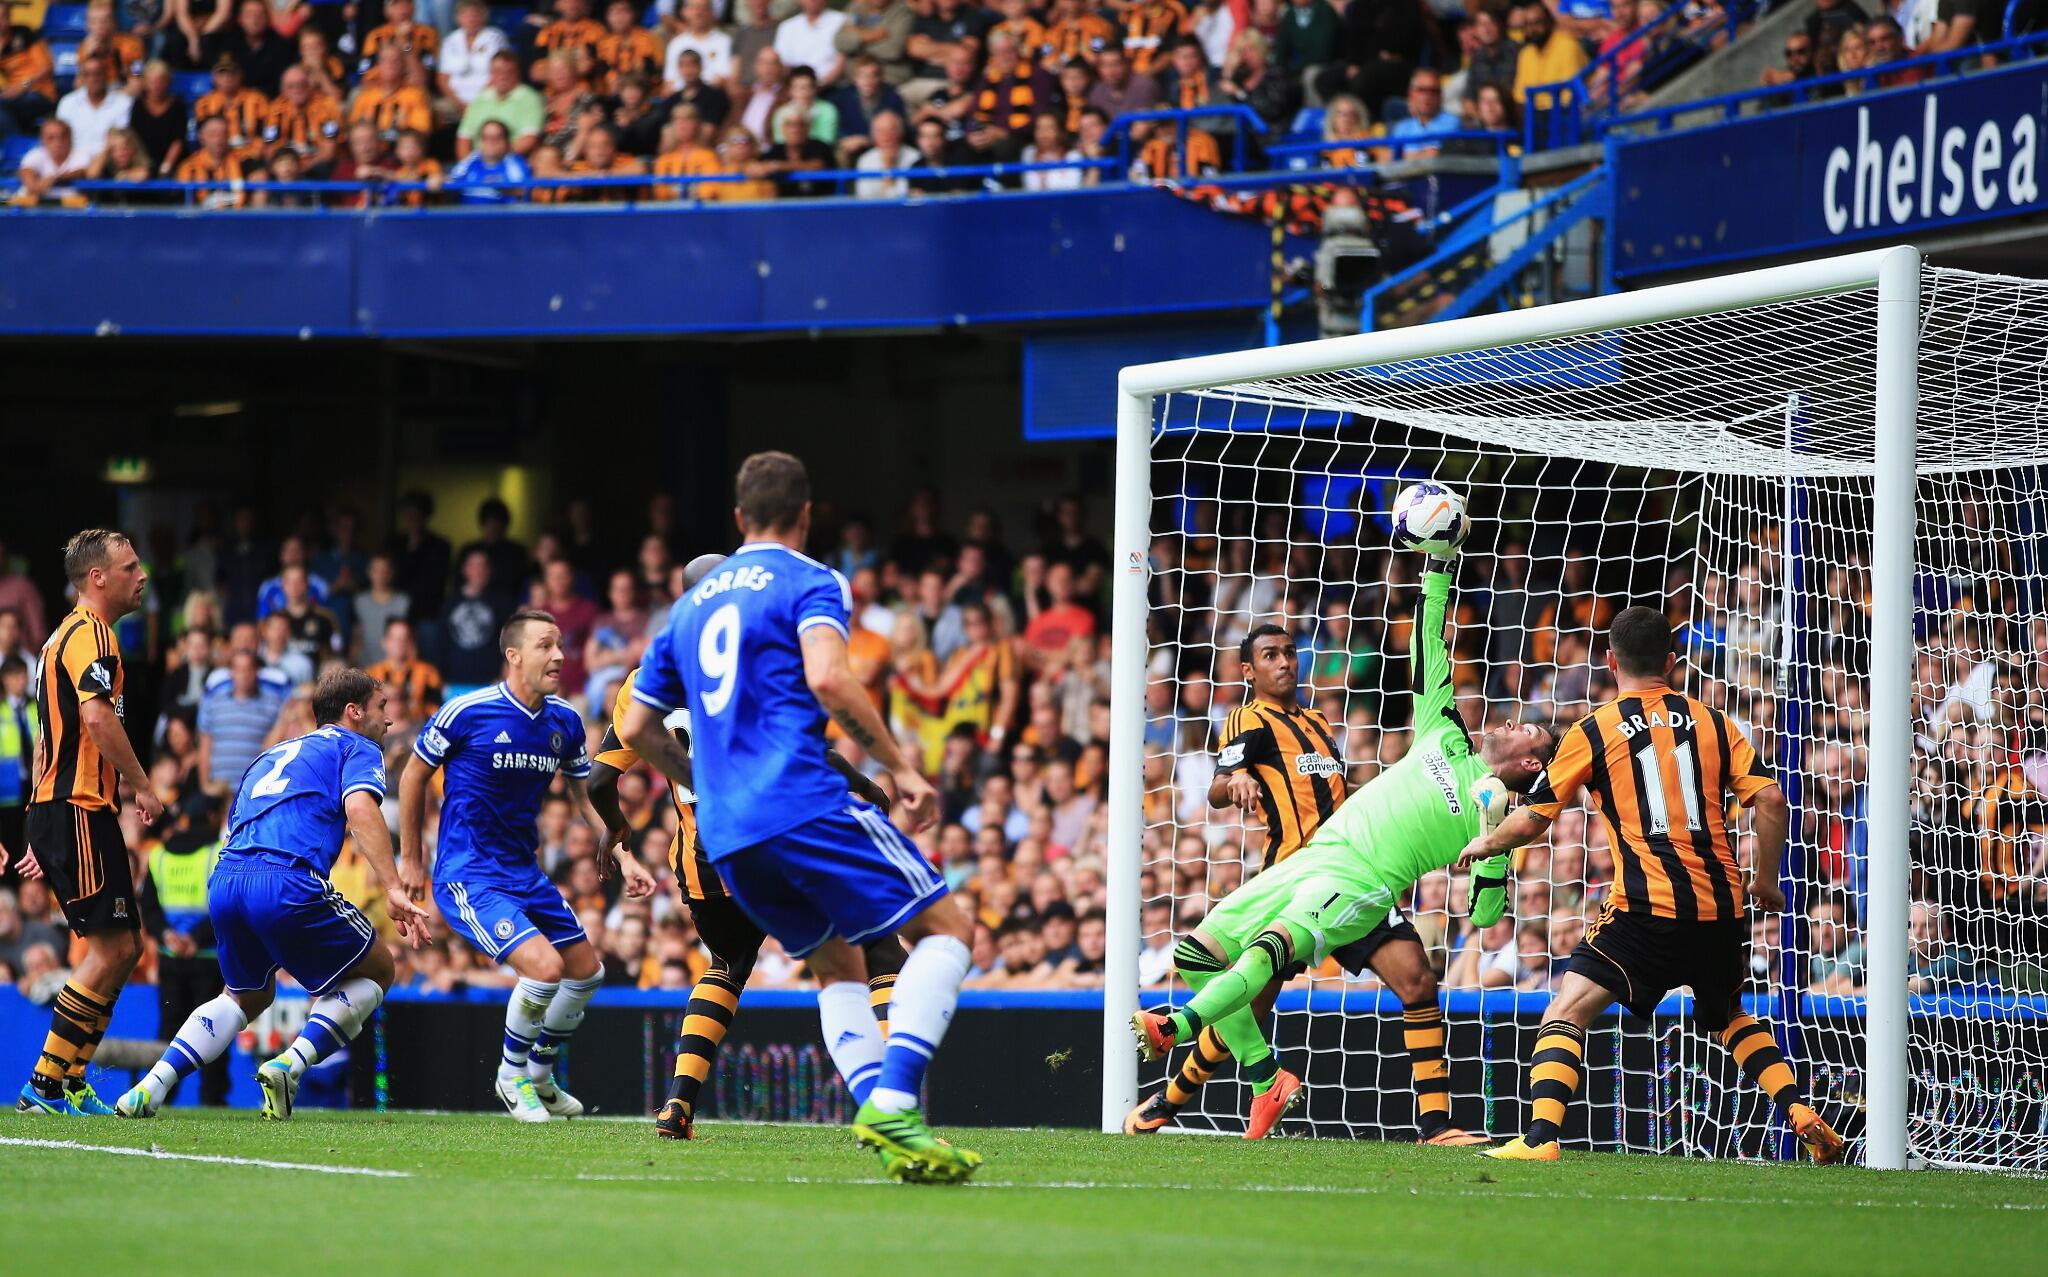 PHOTO Hull keeper Allan McGregor makes a fine save to deny Chelsea's Branislav Ivanovic just before half-time #CHEHUL http://t.co/anGnuouiBQ